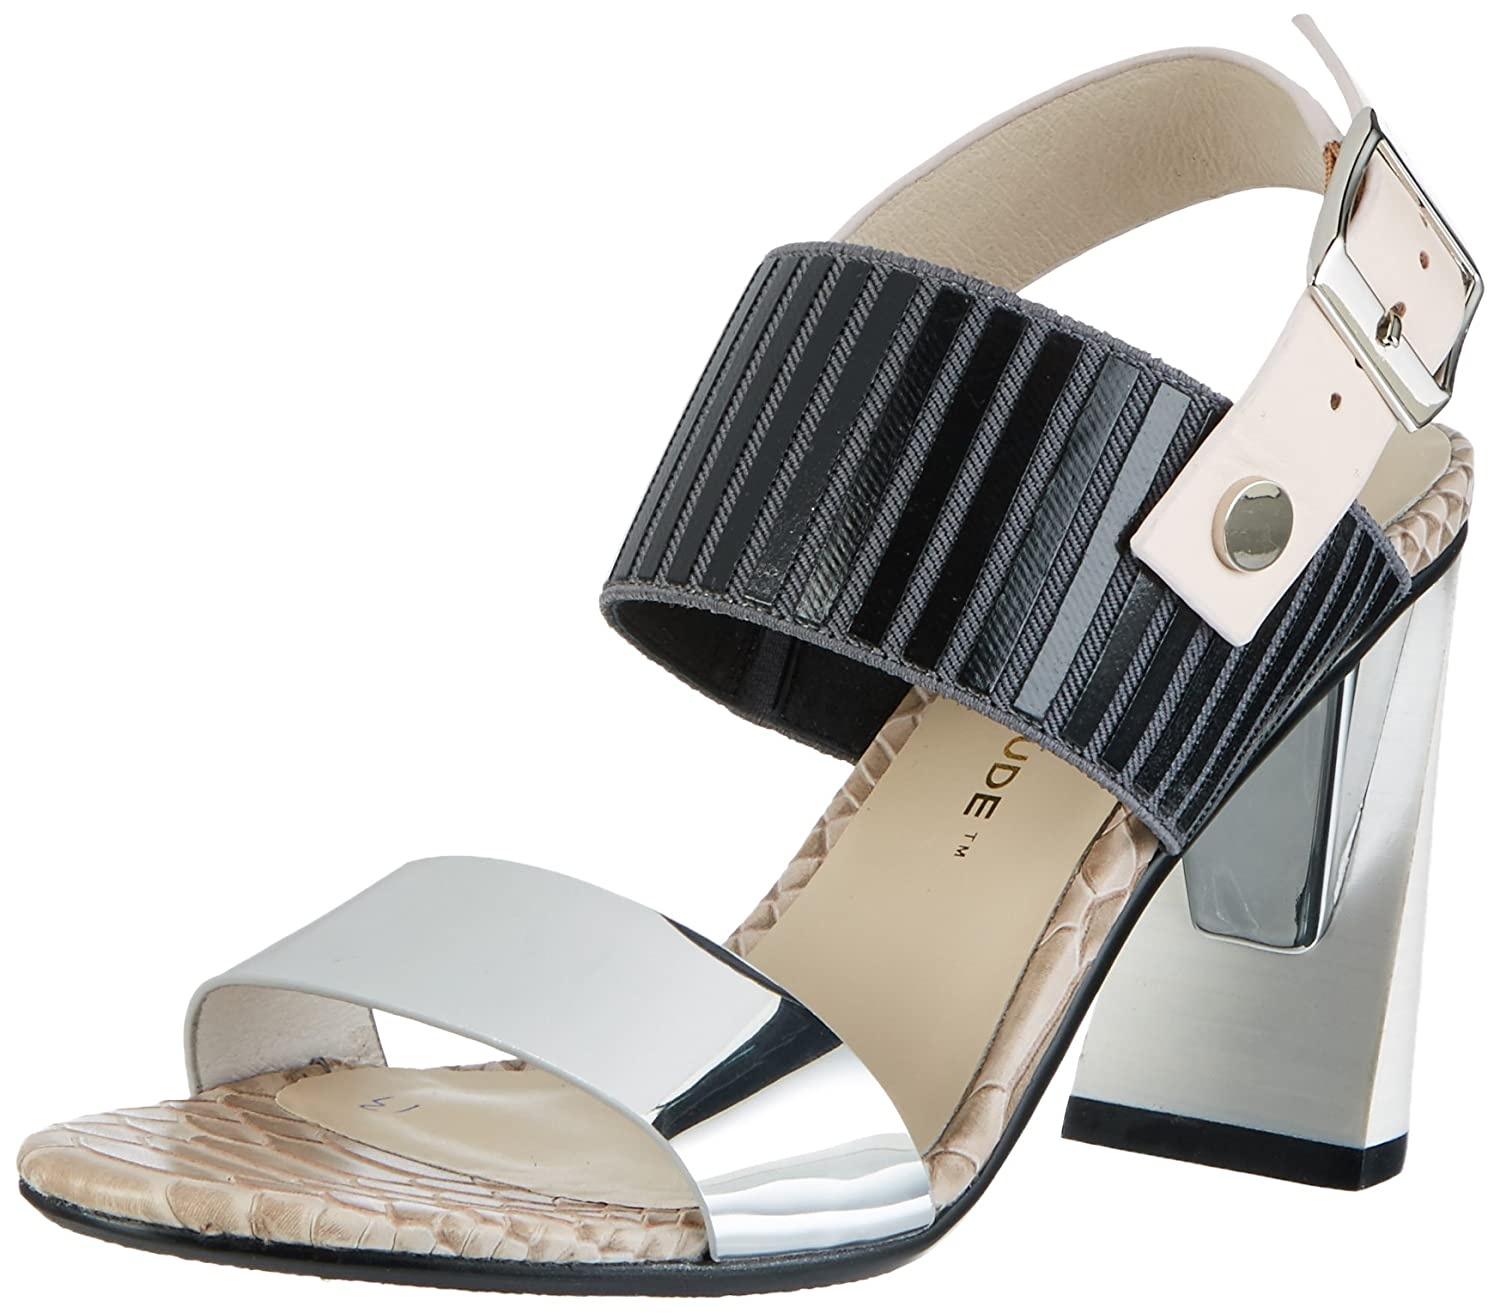 Nude Mujer Www United Slingback Zink Outlet Sandalias Hi 8NOnwvm0